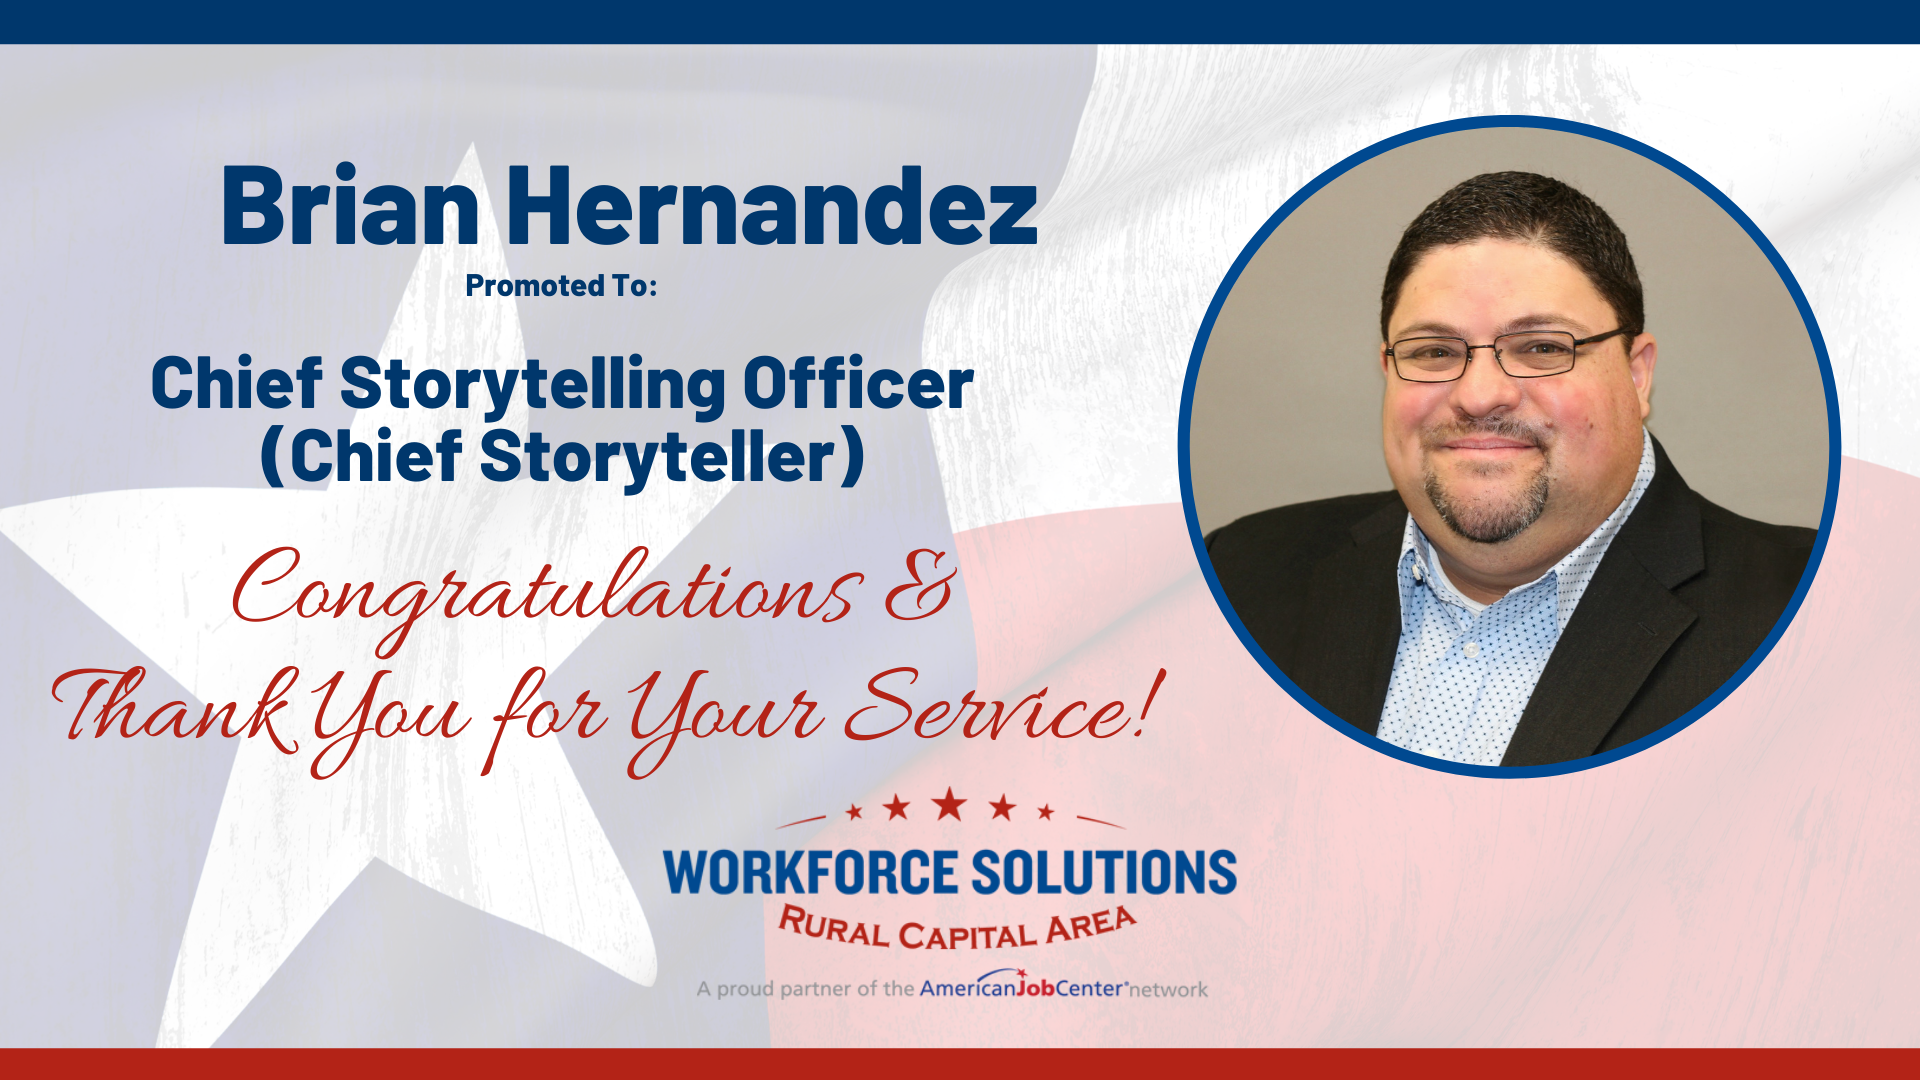 Brian Hernandez Promoted to Chief Storyteller for Workforce Solutions Rural Capital Area